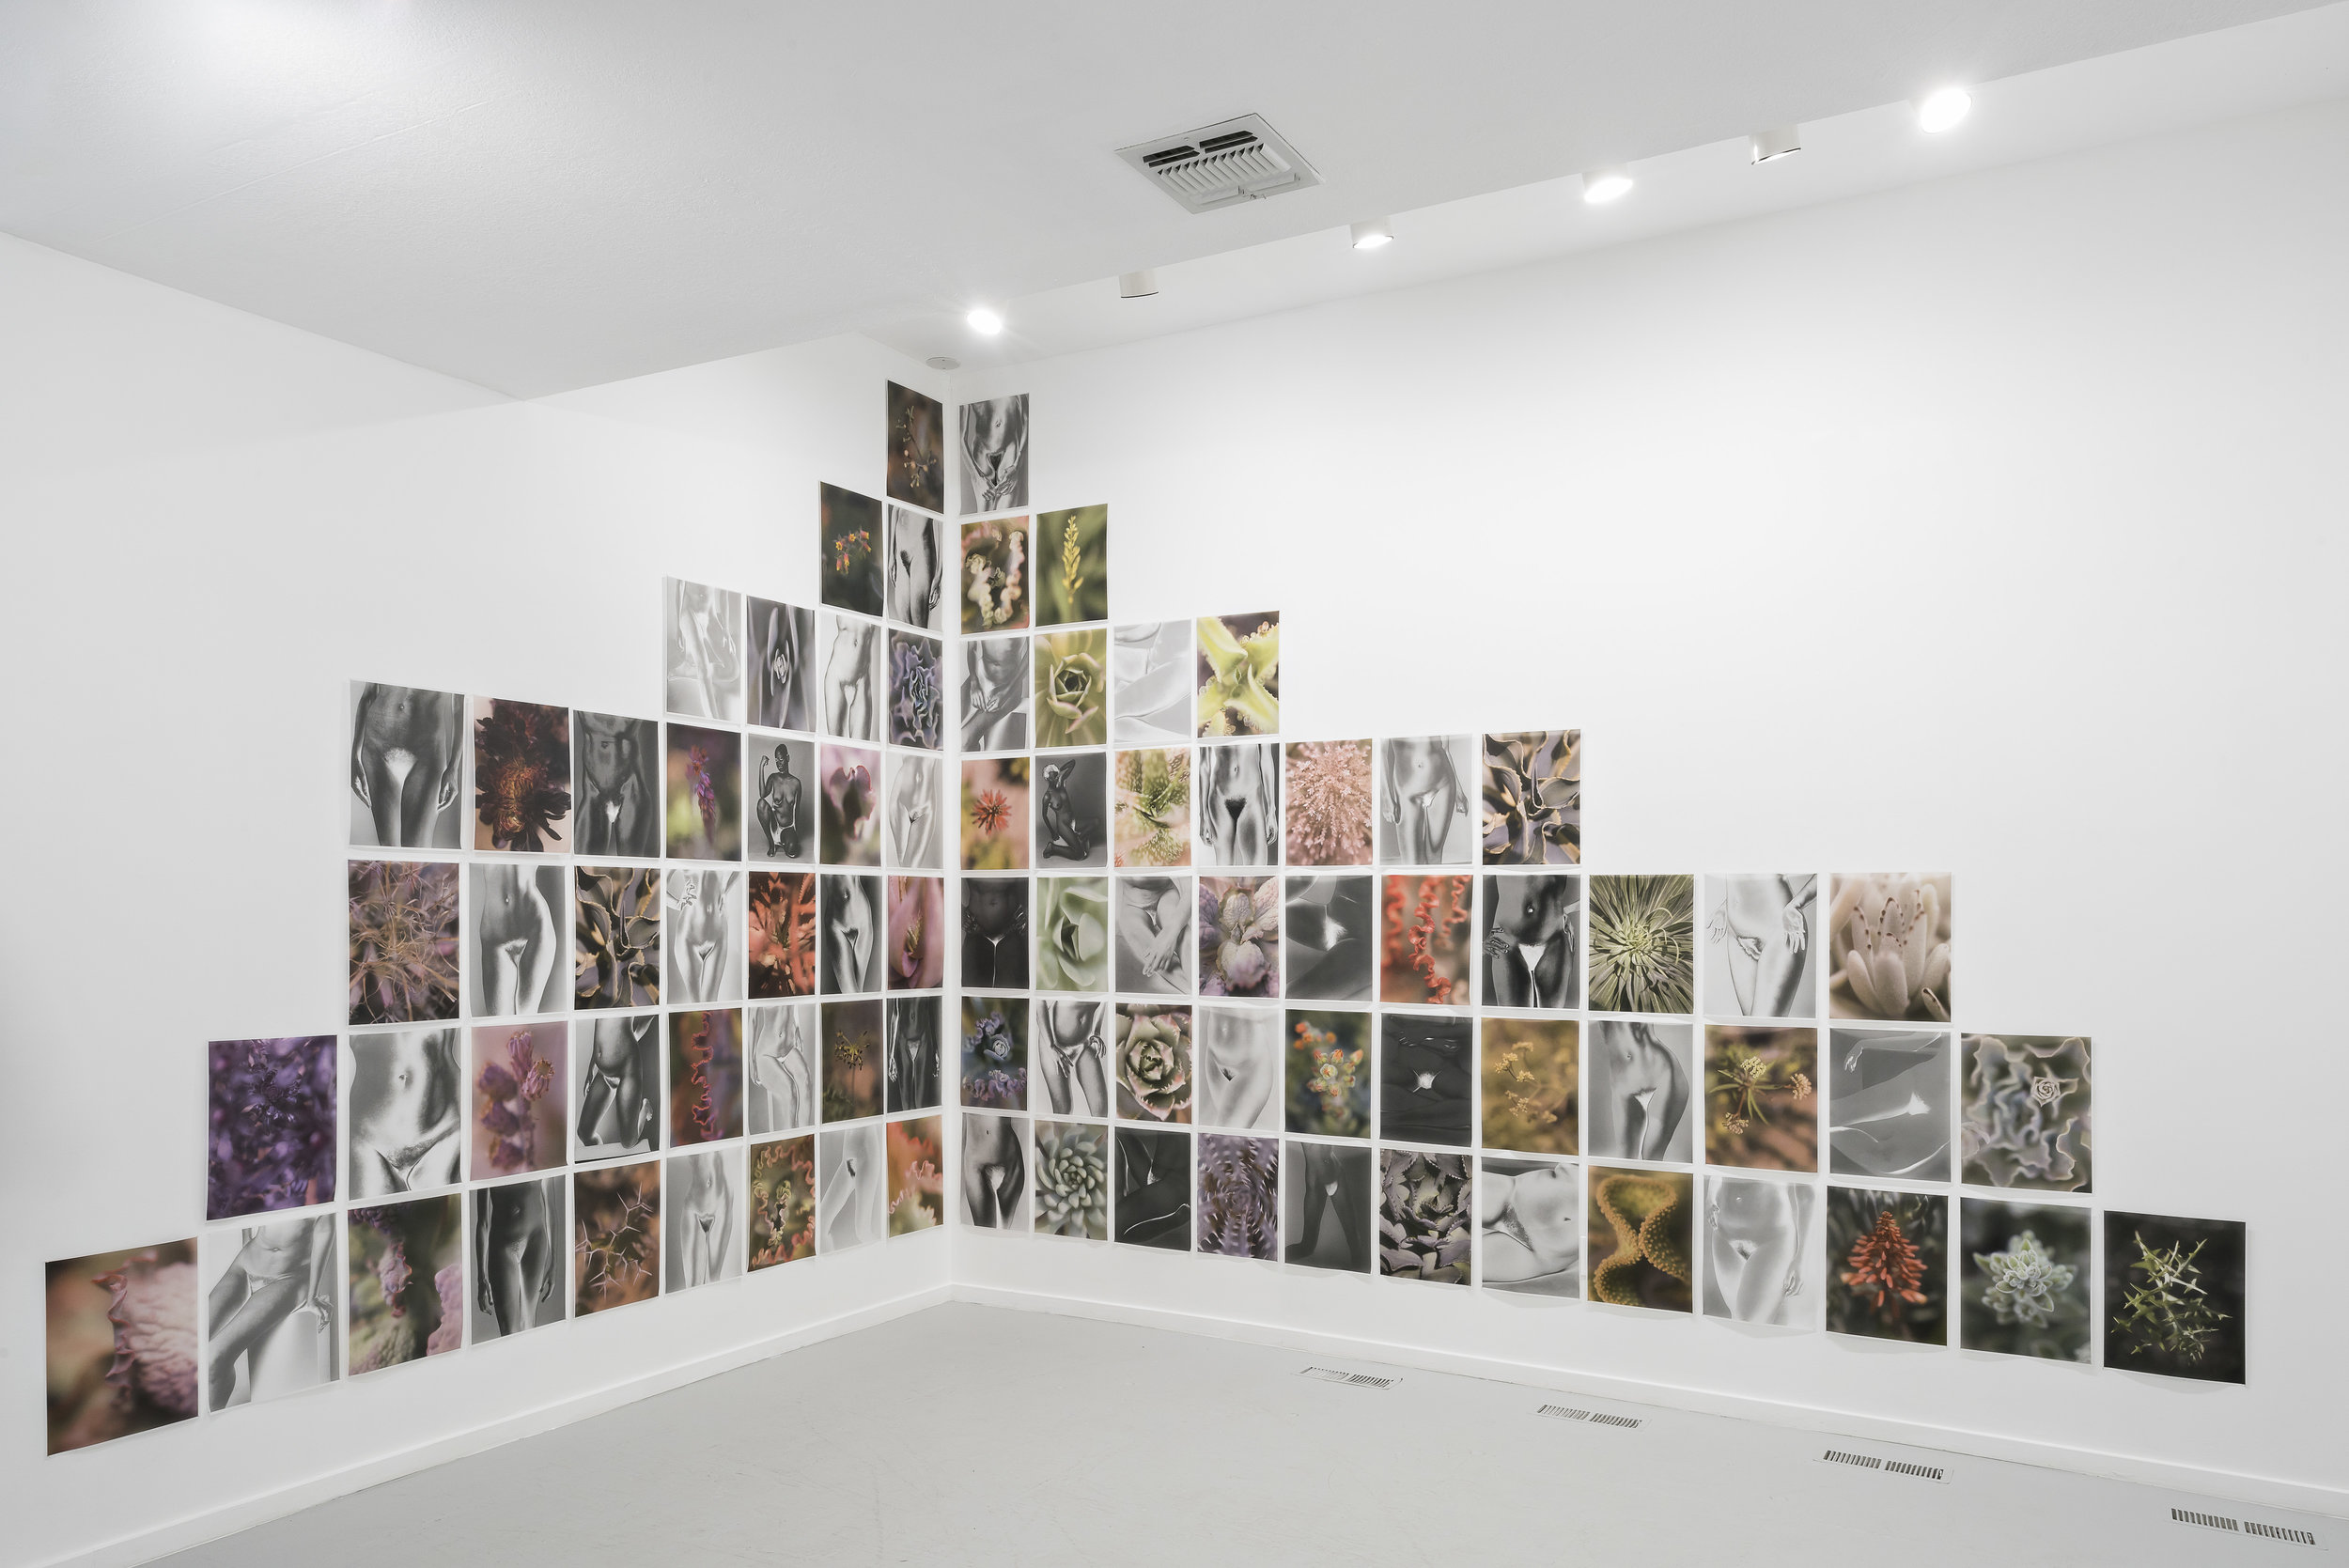 Mona Kuhn:  Bushes & Succulents  March 2 - April 27, 2019  PRESS RELEASE  |  EXHIBITION VIEWS